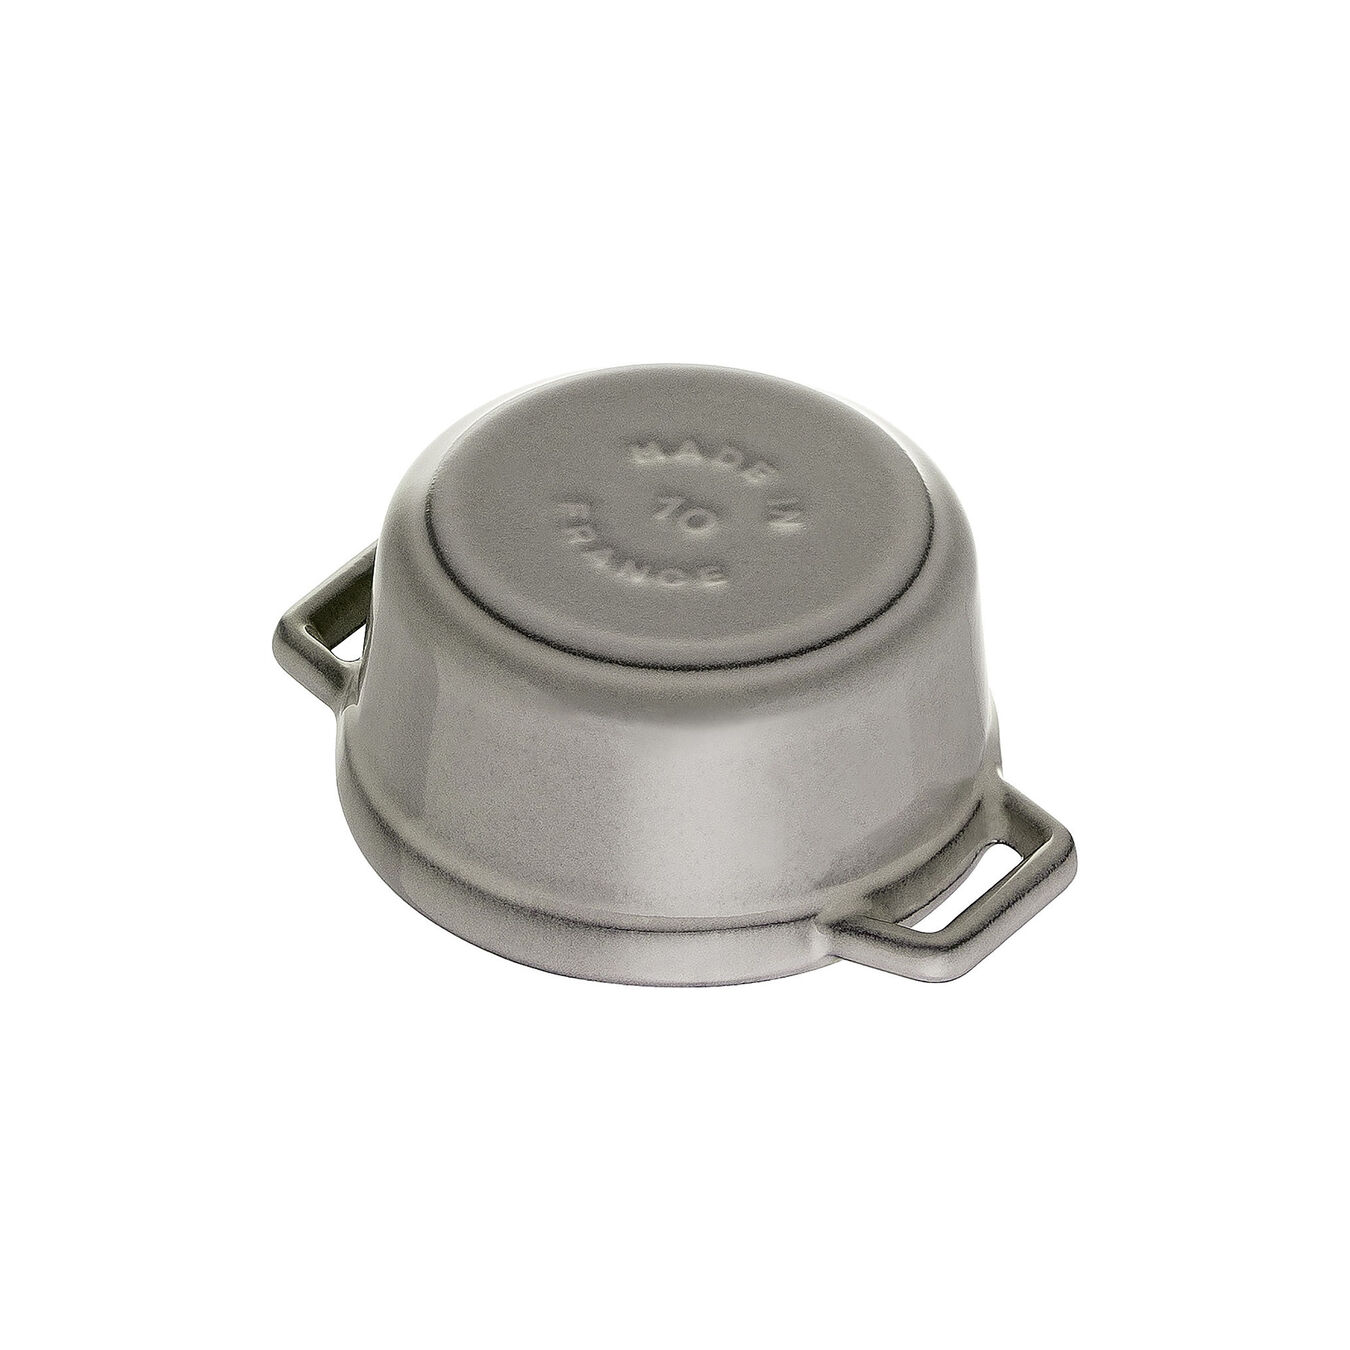 0.275 qt, Mini Cocotte, graphite grey,,large 4